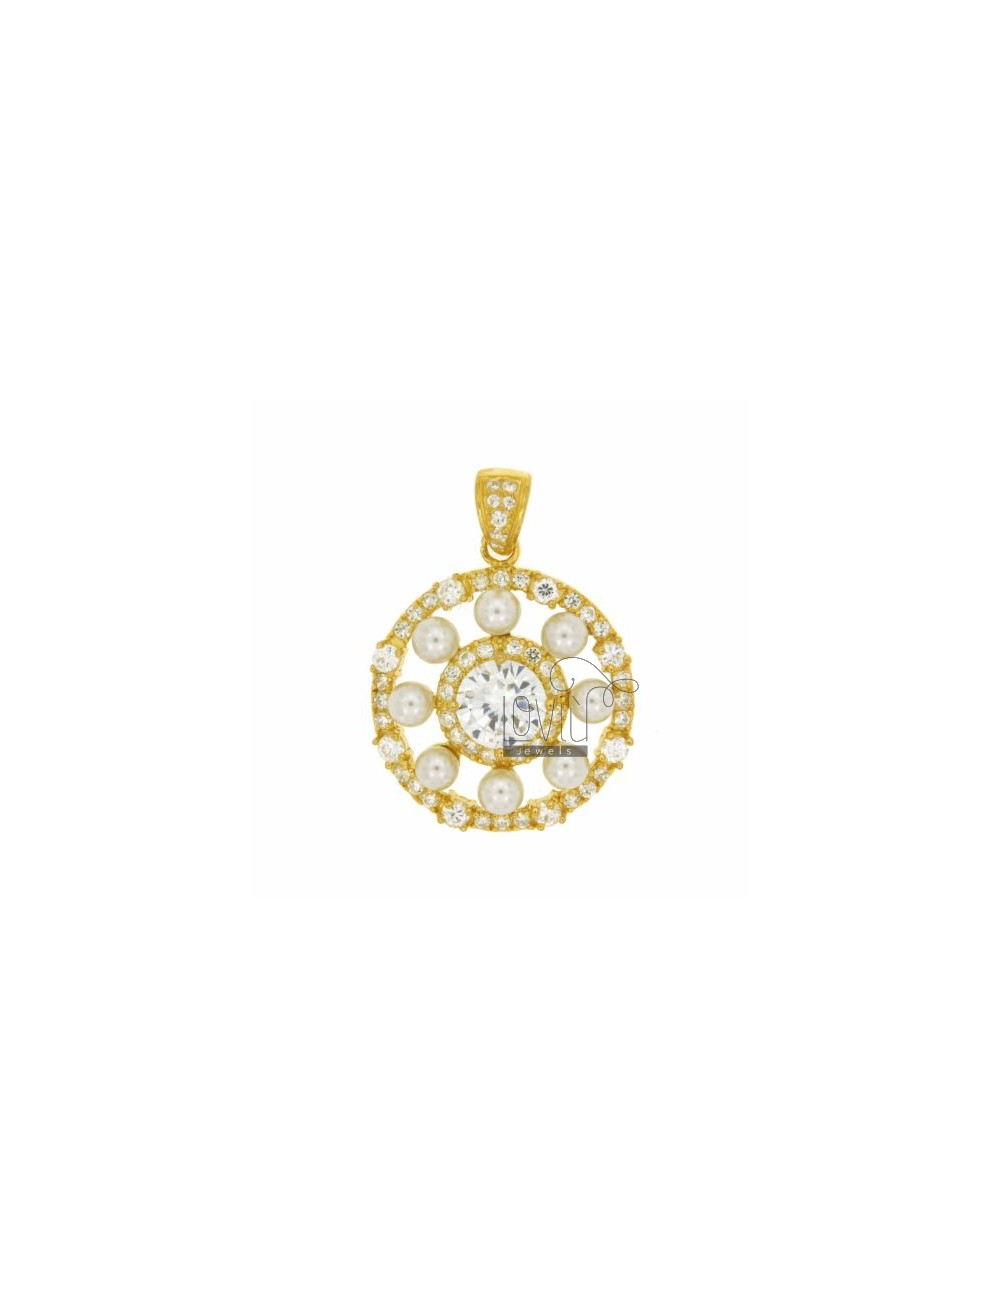 24 MM ROUND PENDANT WITH SWAROVSKI AND BEADS IN GOLD PLATED AG TIT 925 ‰